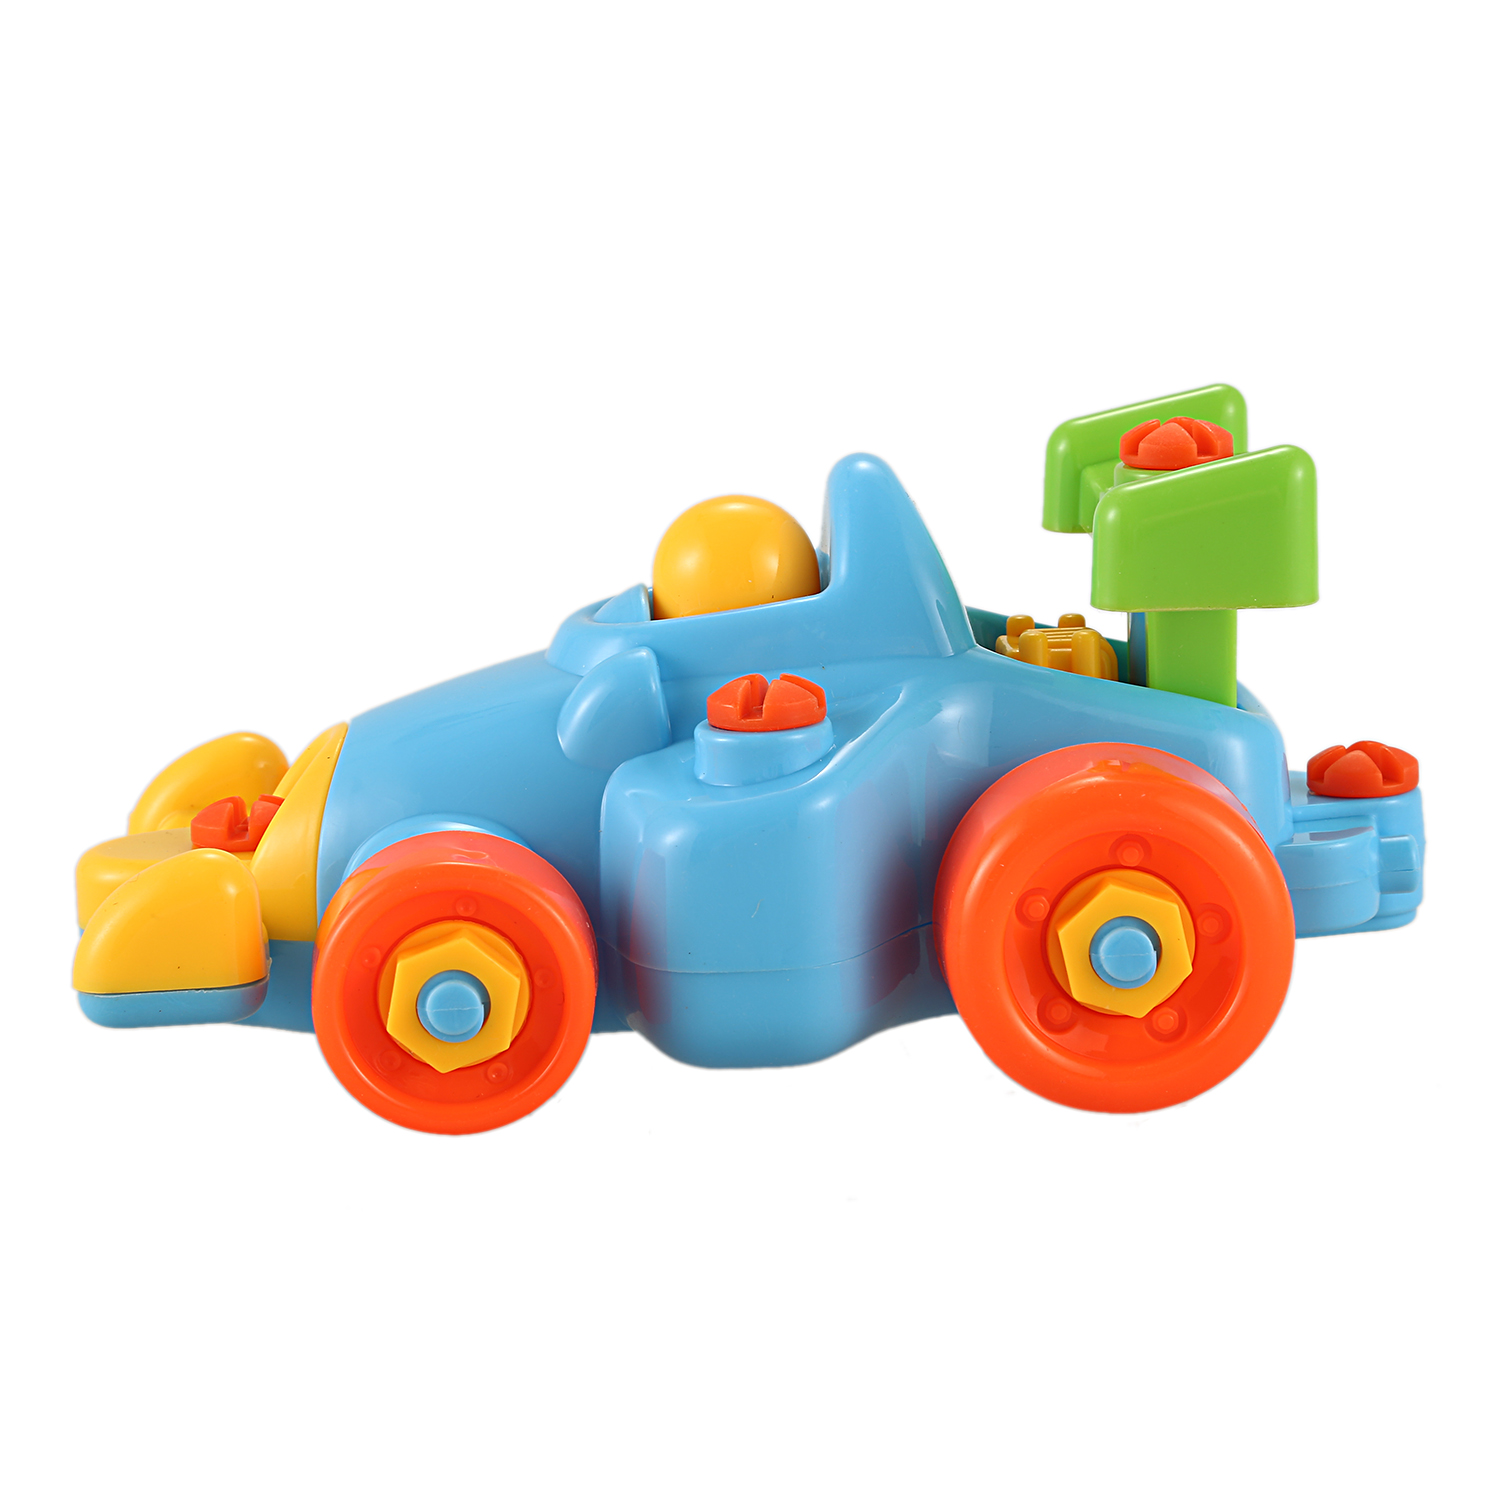 Construction Toys Take Apart Toys Assembly Car Take-apart Puzzle Toys for Children 3 Year Old Boys (Car)